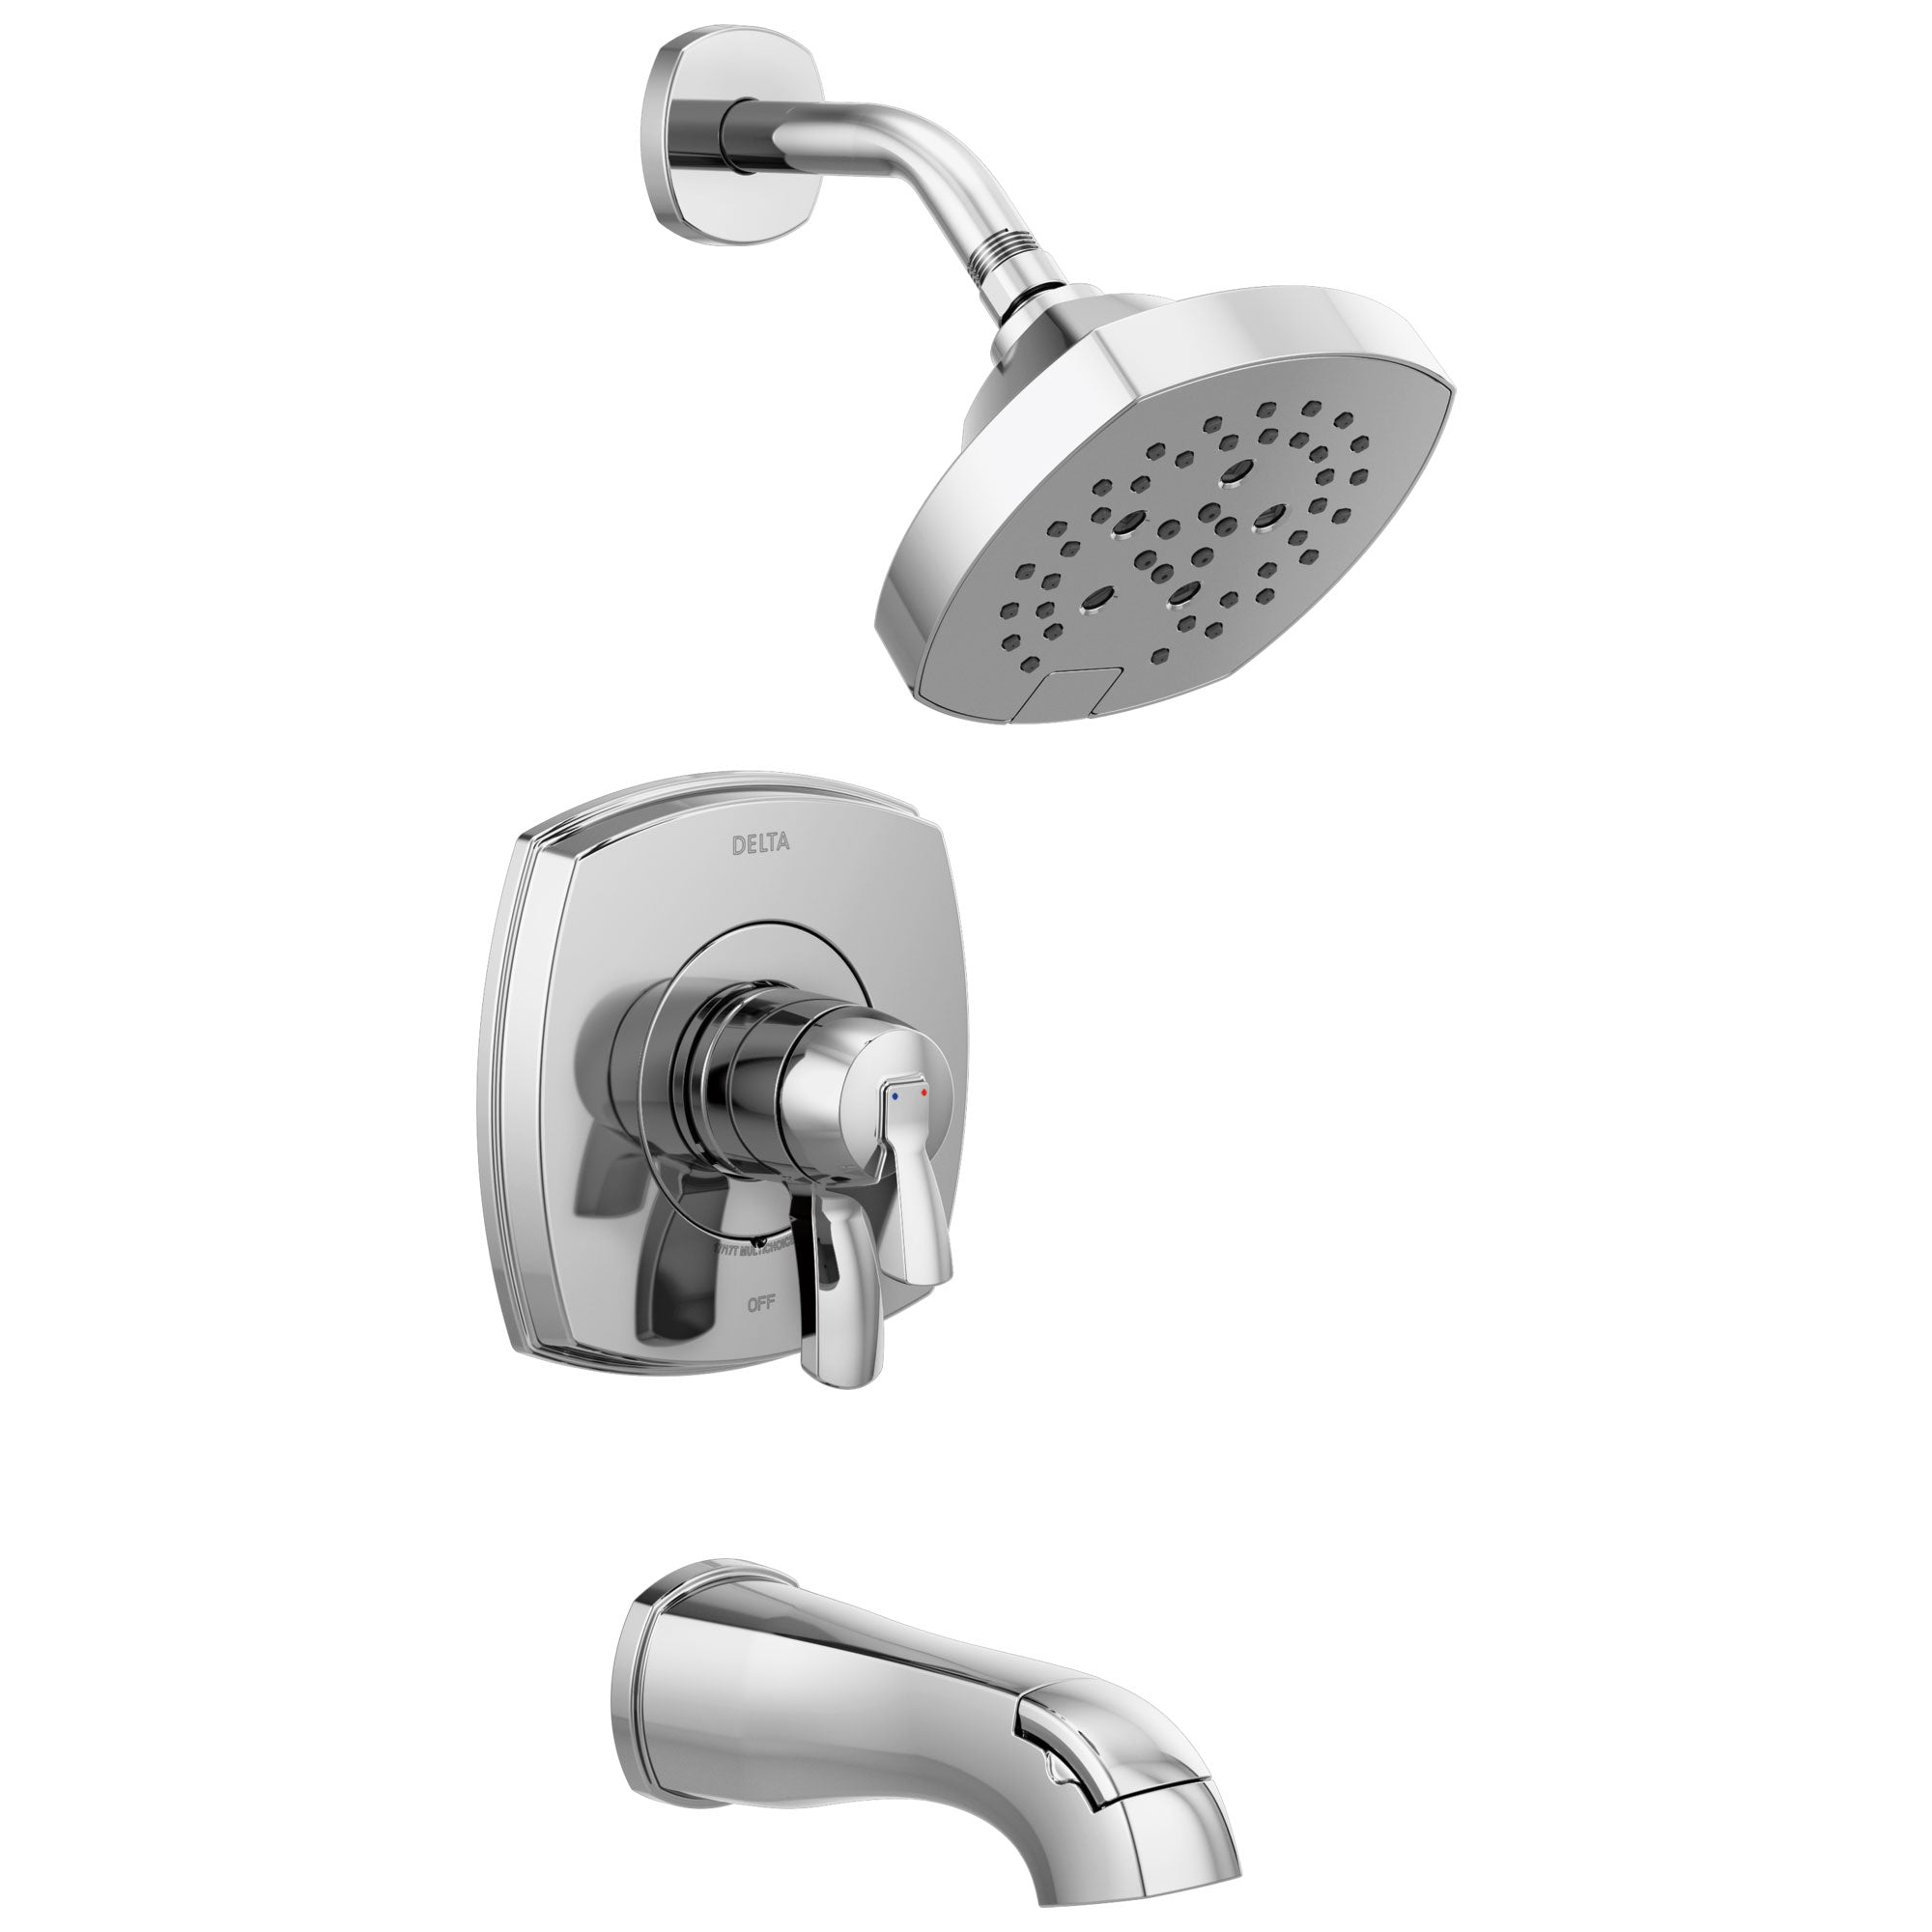 Delta Stryke Chrome Finish 17 Series Tub and Shower Combo Faucet Includes Handles, Cartridge, and Rough Valve with Stops D3336V